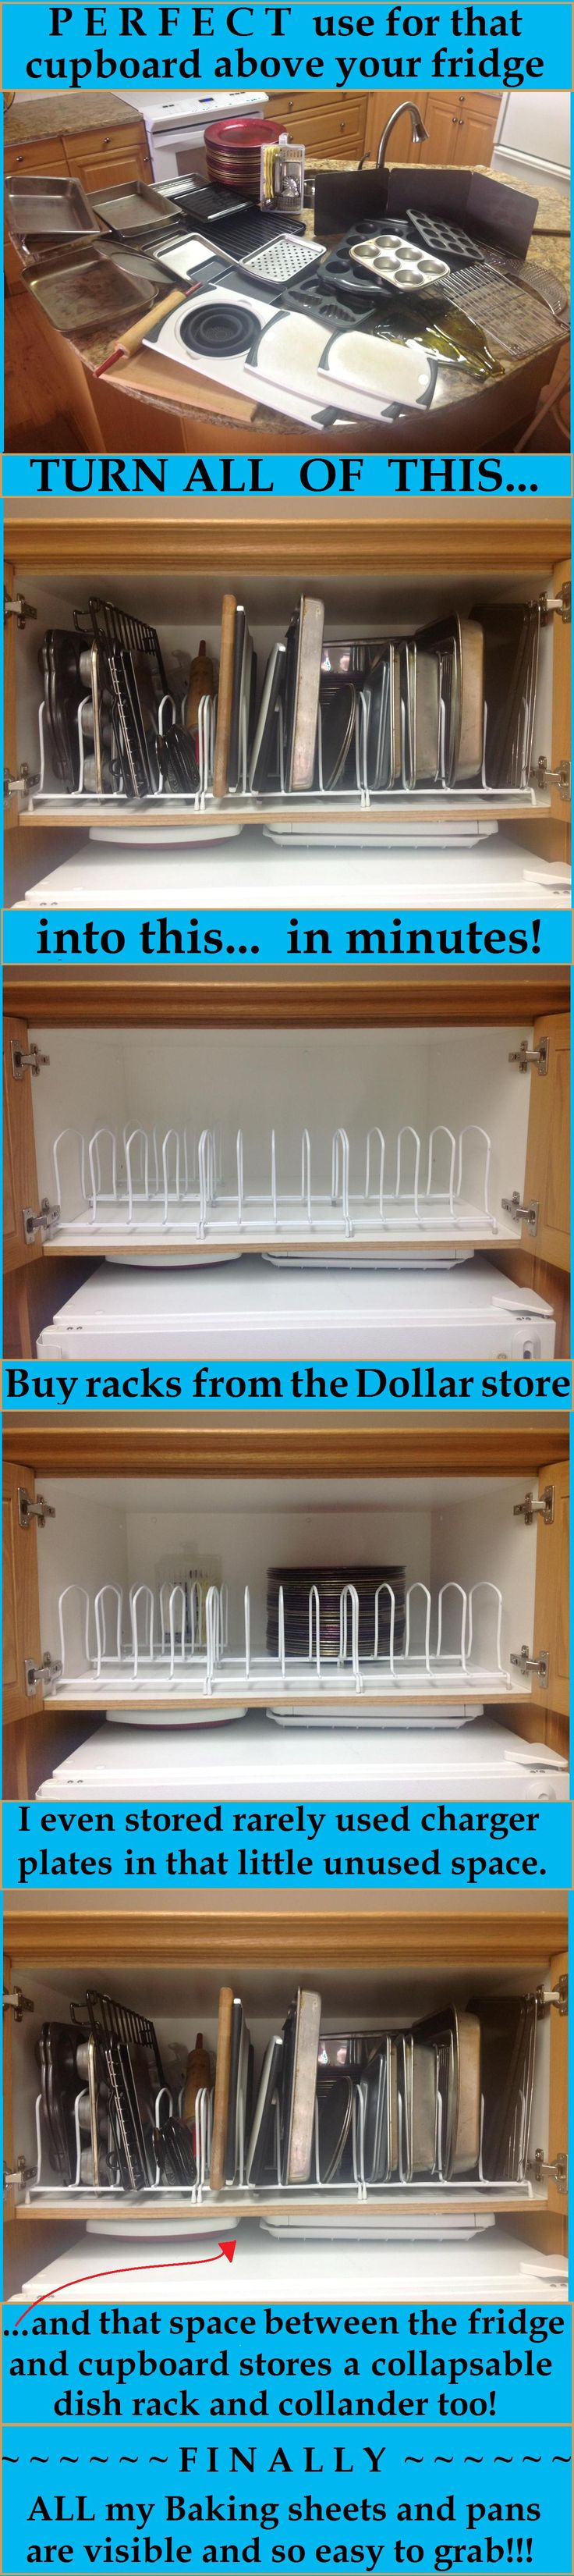 Dollar store dish racks to separate the pans and lids in a cabinet above the fridge by Hasenfeffer